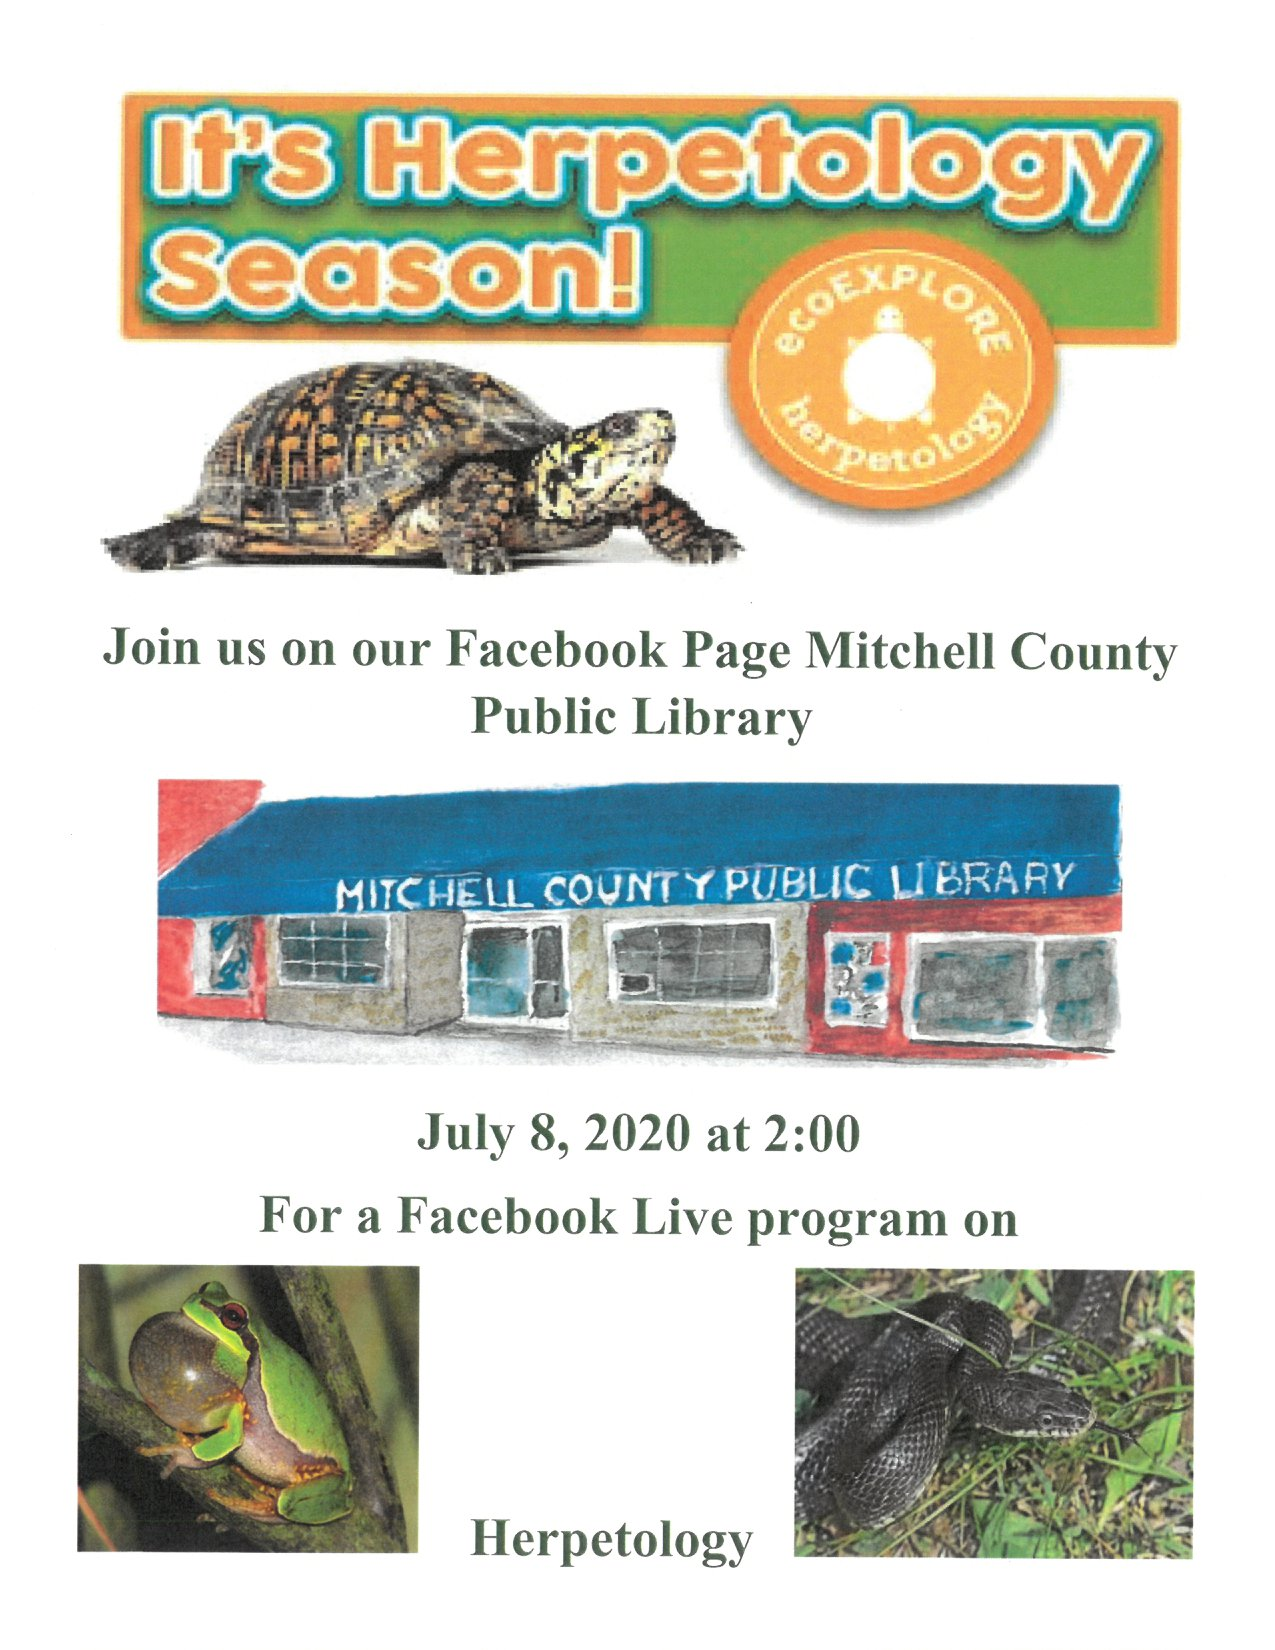 A poster with images of a turtle, a frog, and a snake; the poster describes the Herpetology Season! event held on Mitchell County Library's Facebook page on July 8 at 2:00pm